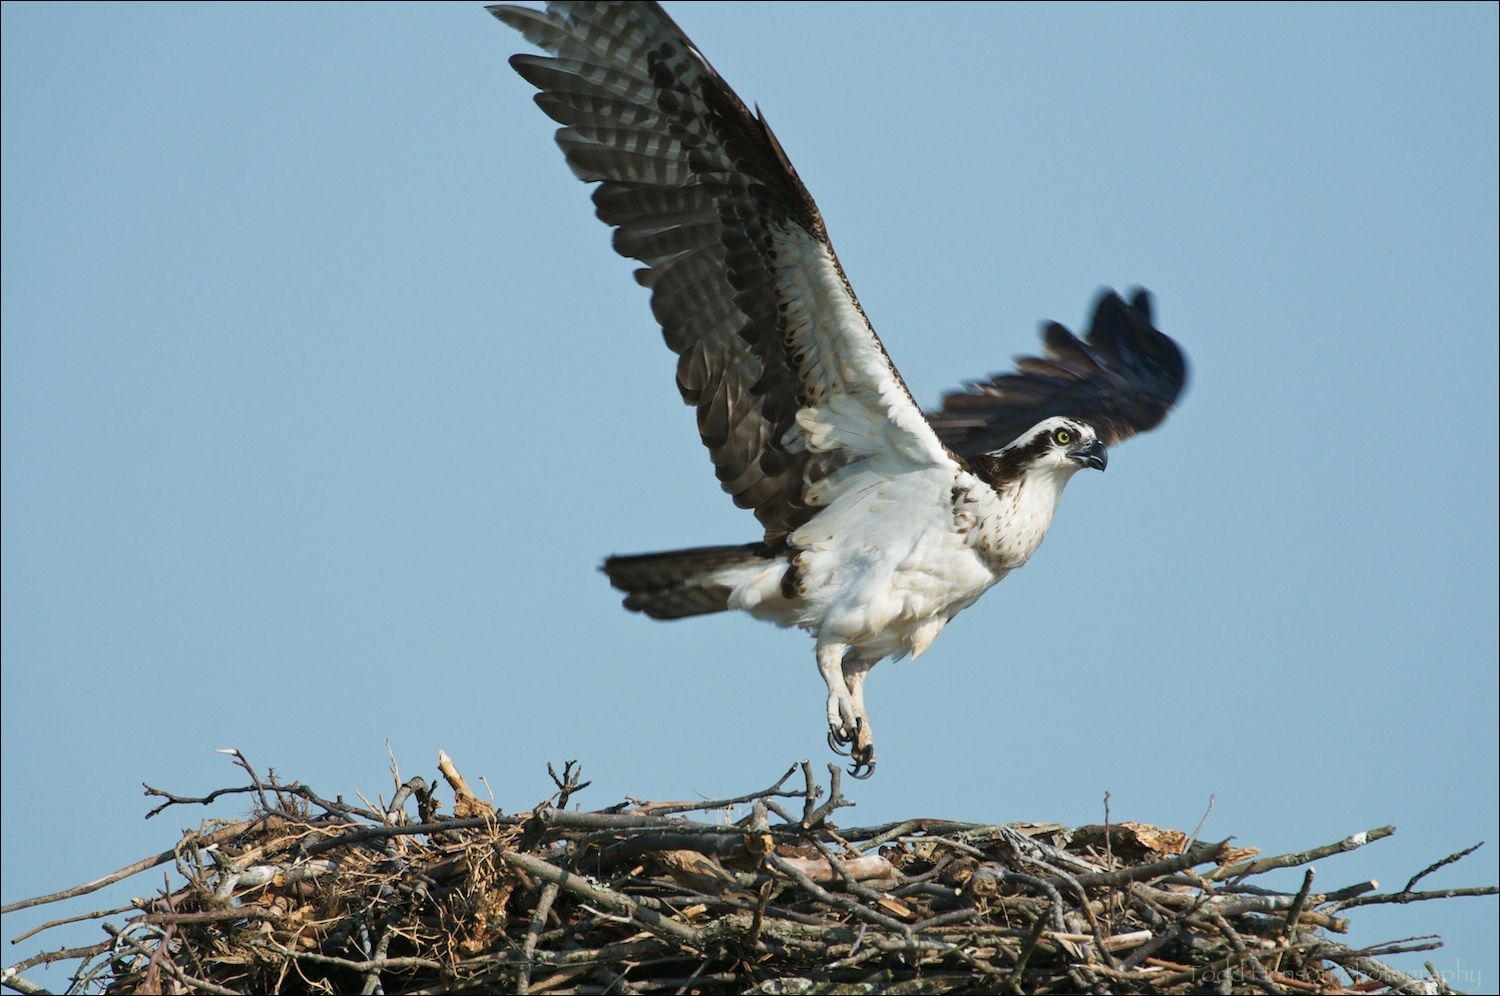 Osprey taking off from nest